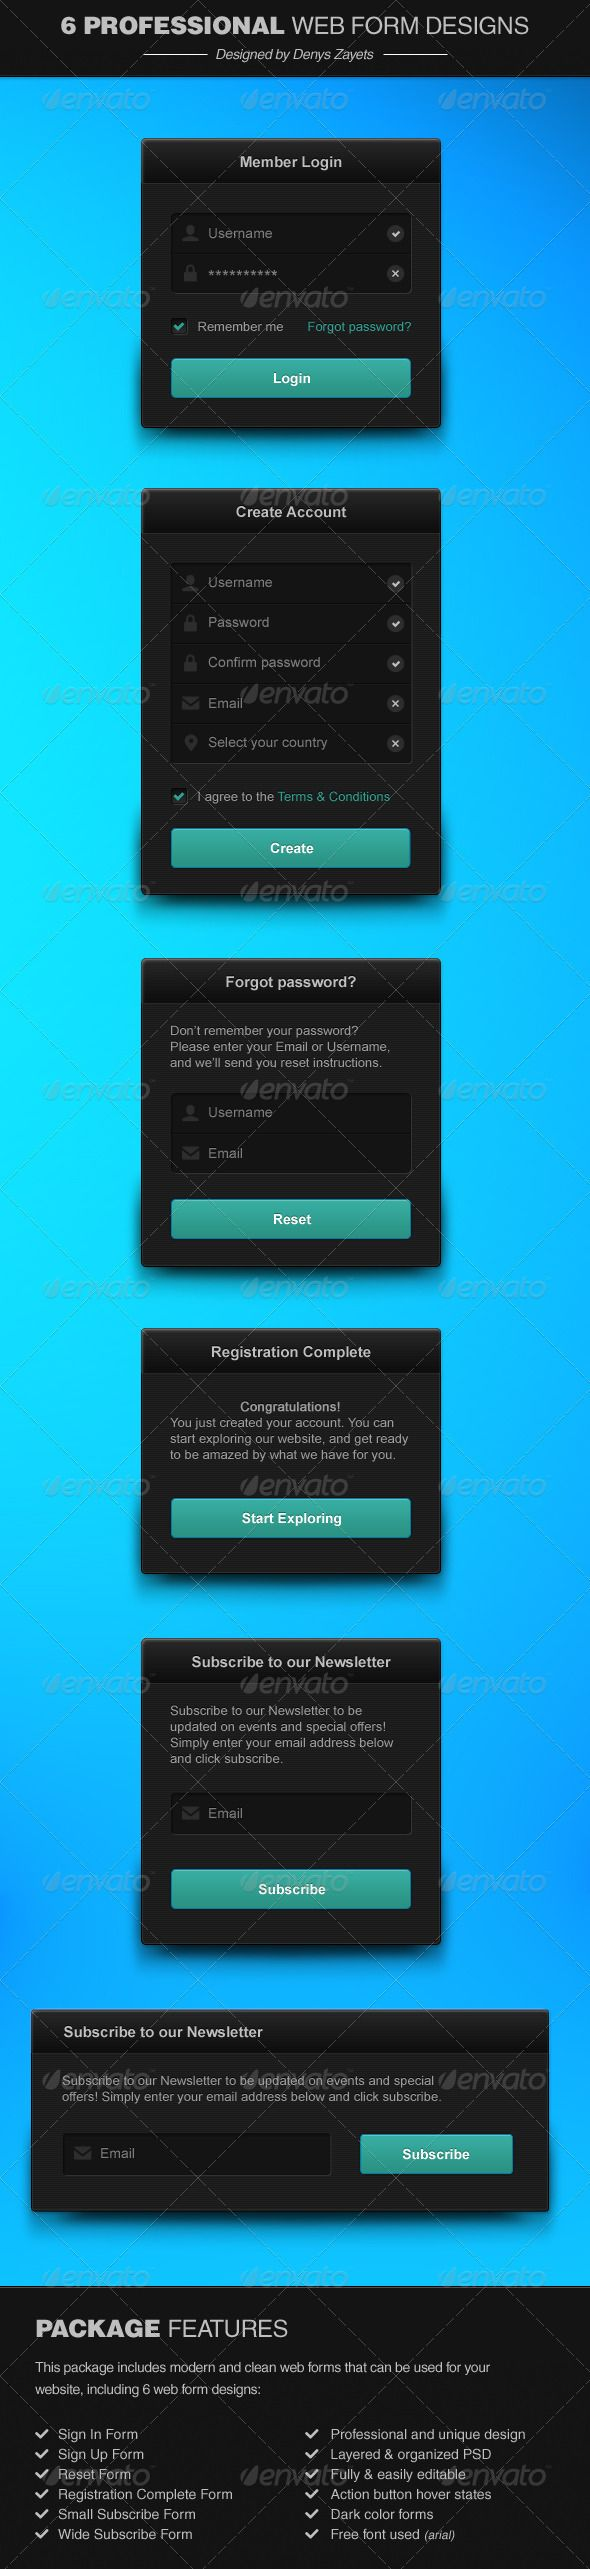 6 Professional Web Form Designs by Denys Zayets